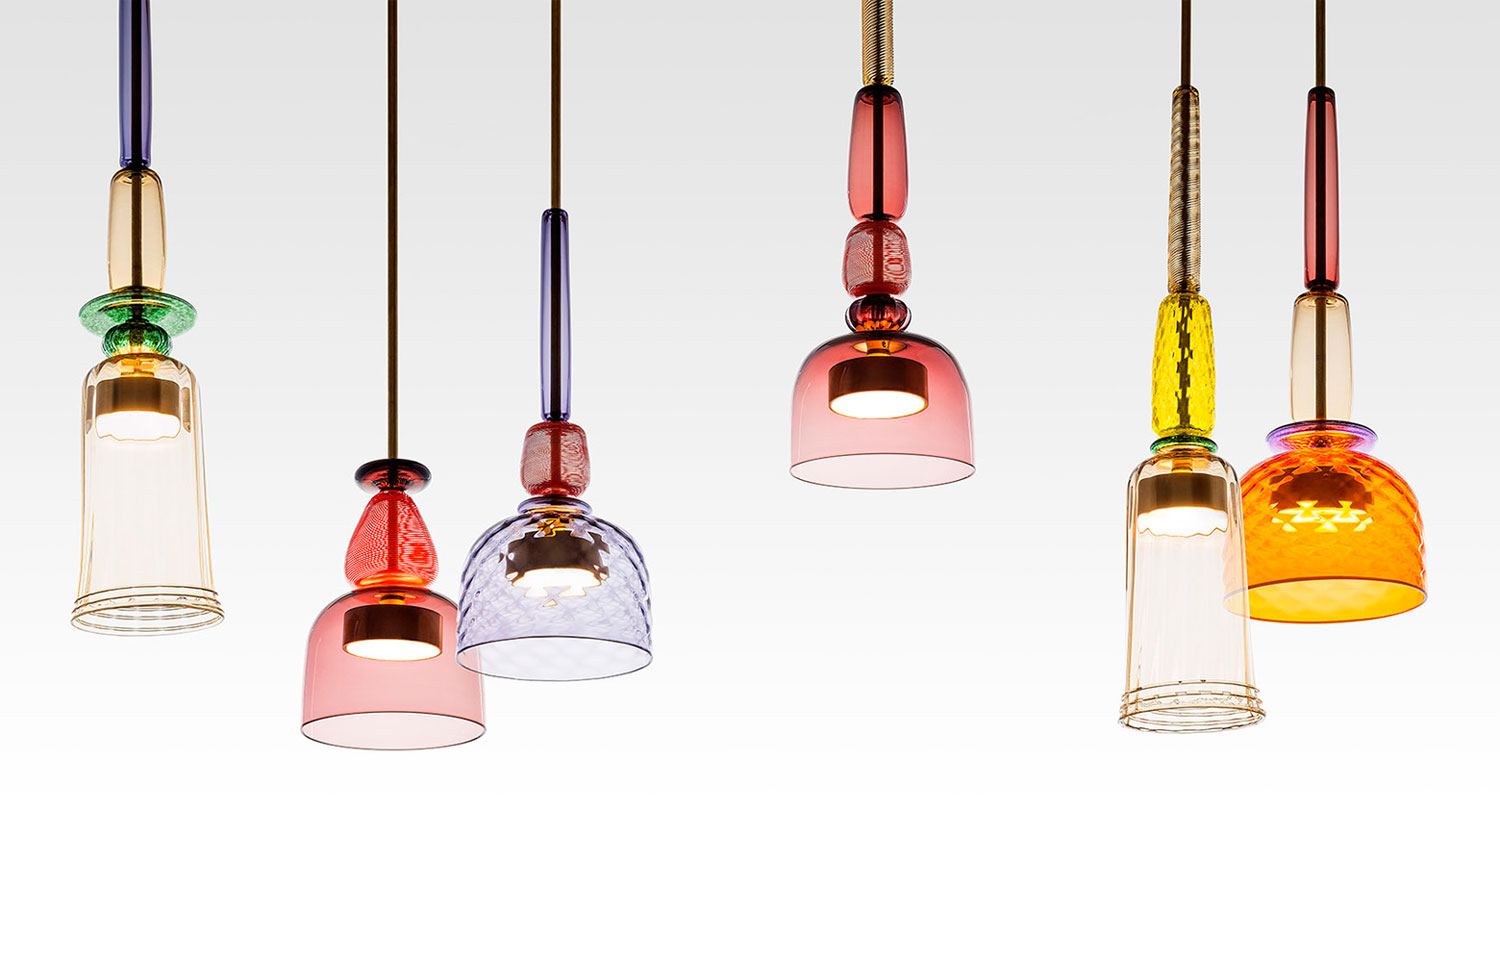 I-Flauti-lights–by-Giopato-and-Coombes-Maison-Objet-2015-Yellowtrace-01.jpg